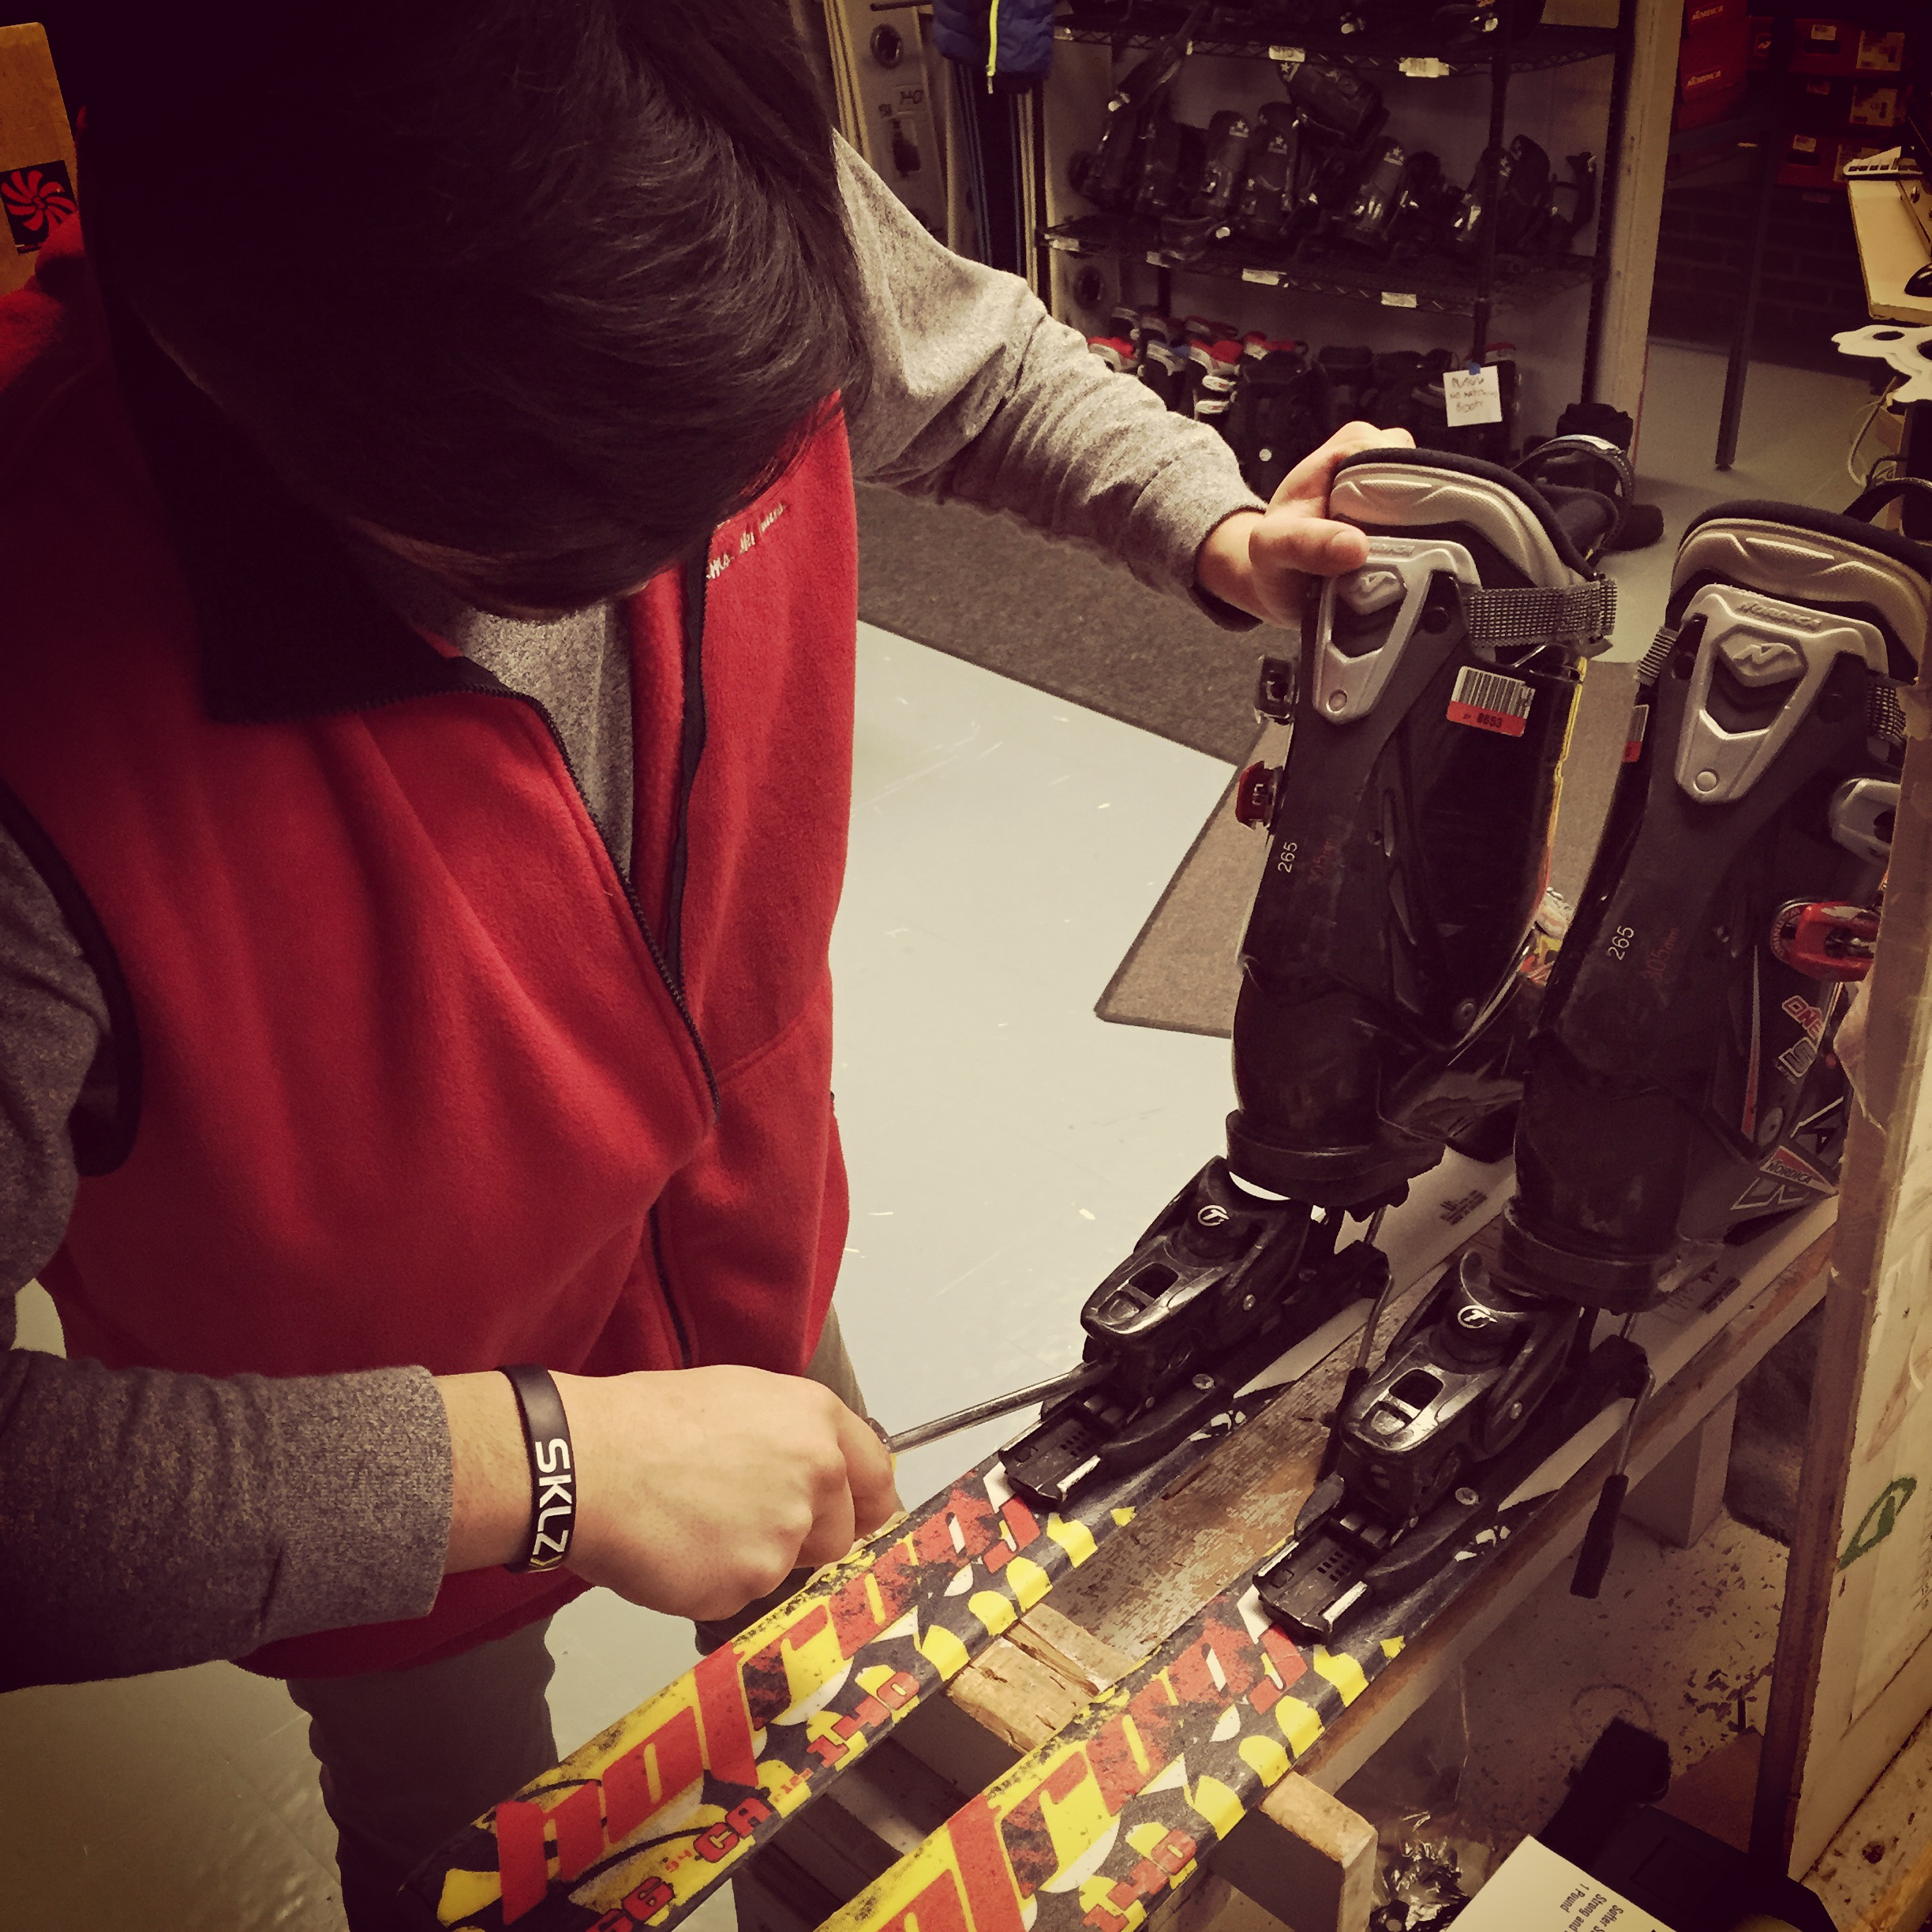 Williams ski service team member setting up bindings on rental skis